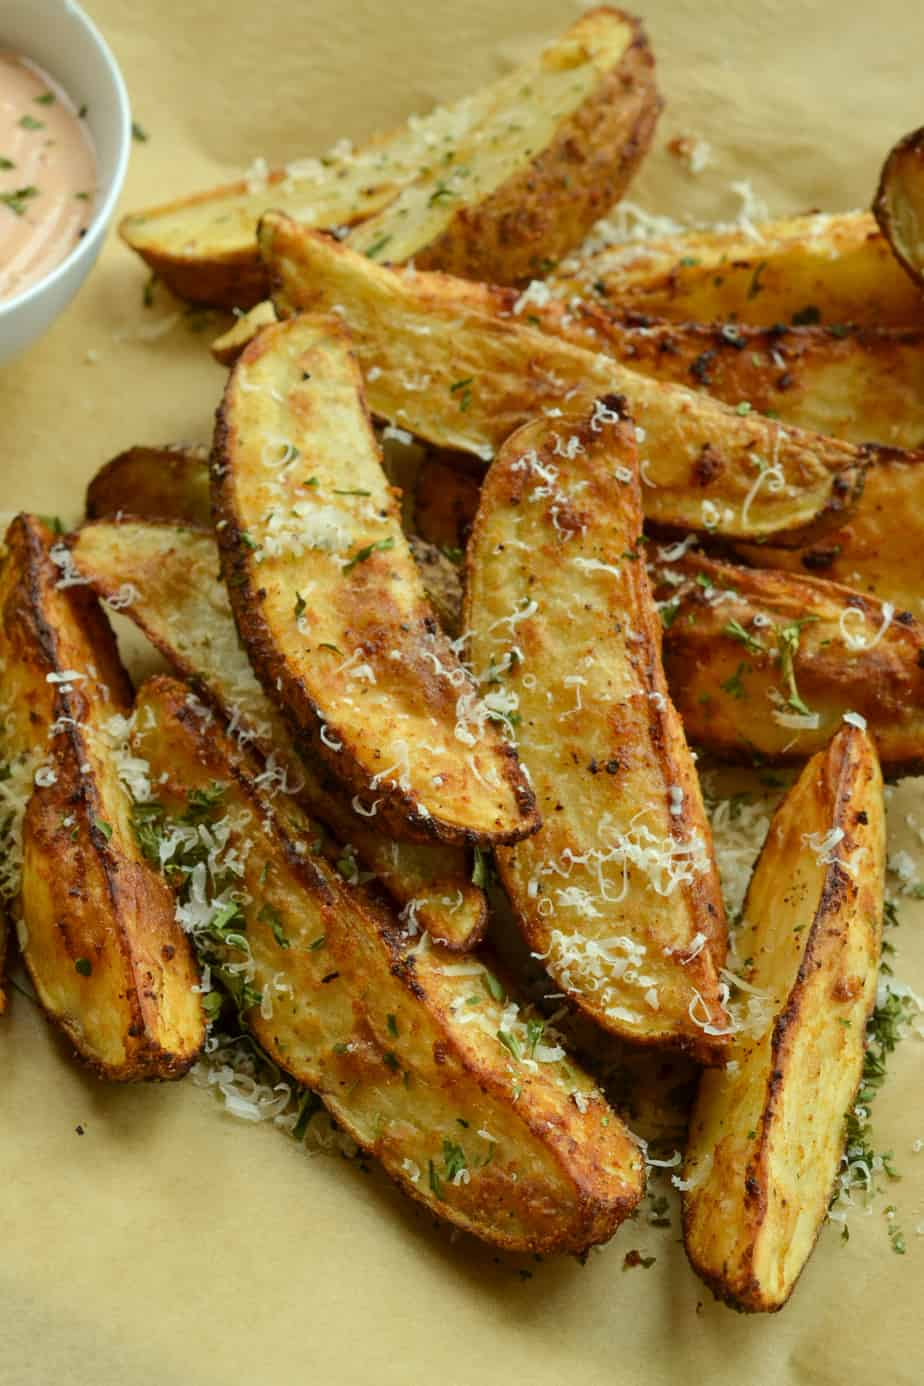 Crispy air fried potato wedges sprinkled with Parmesan cheese and parsley